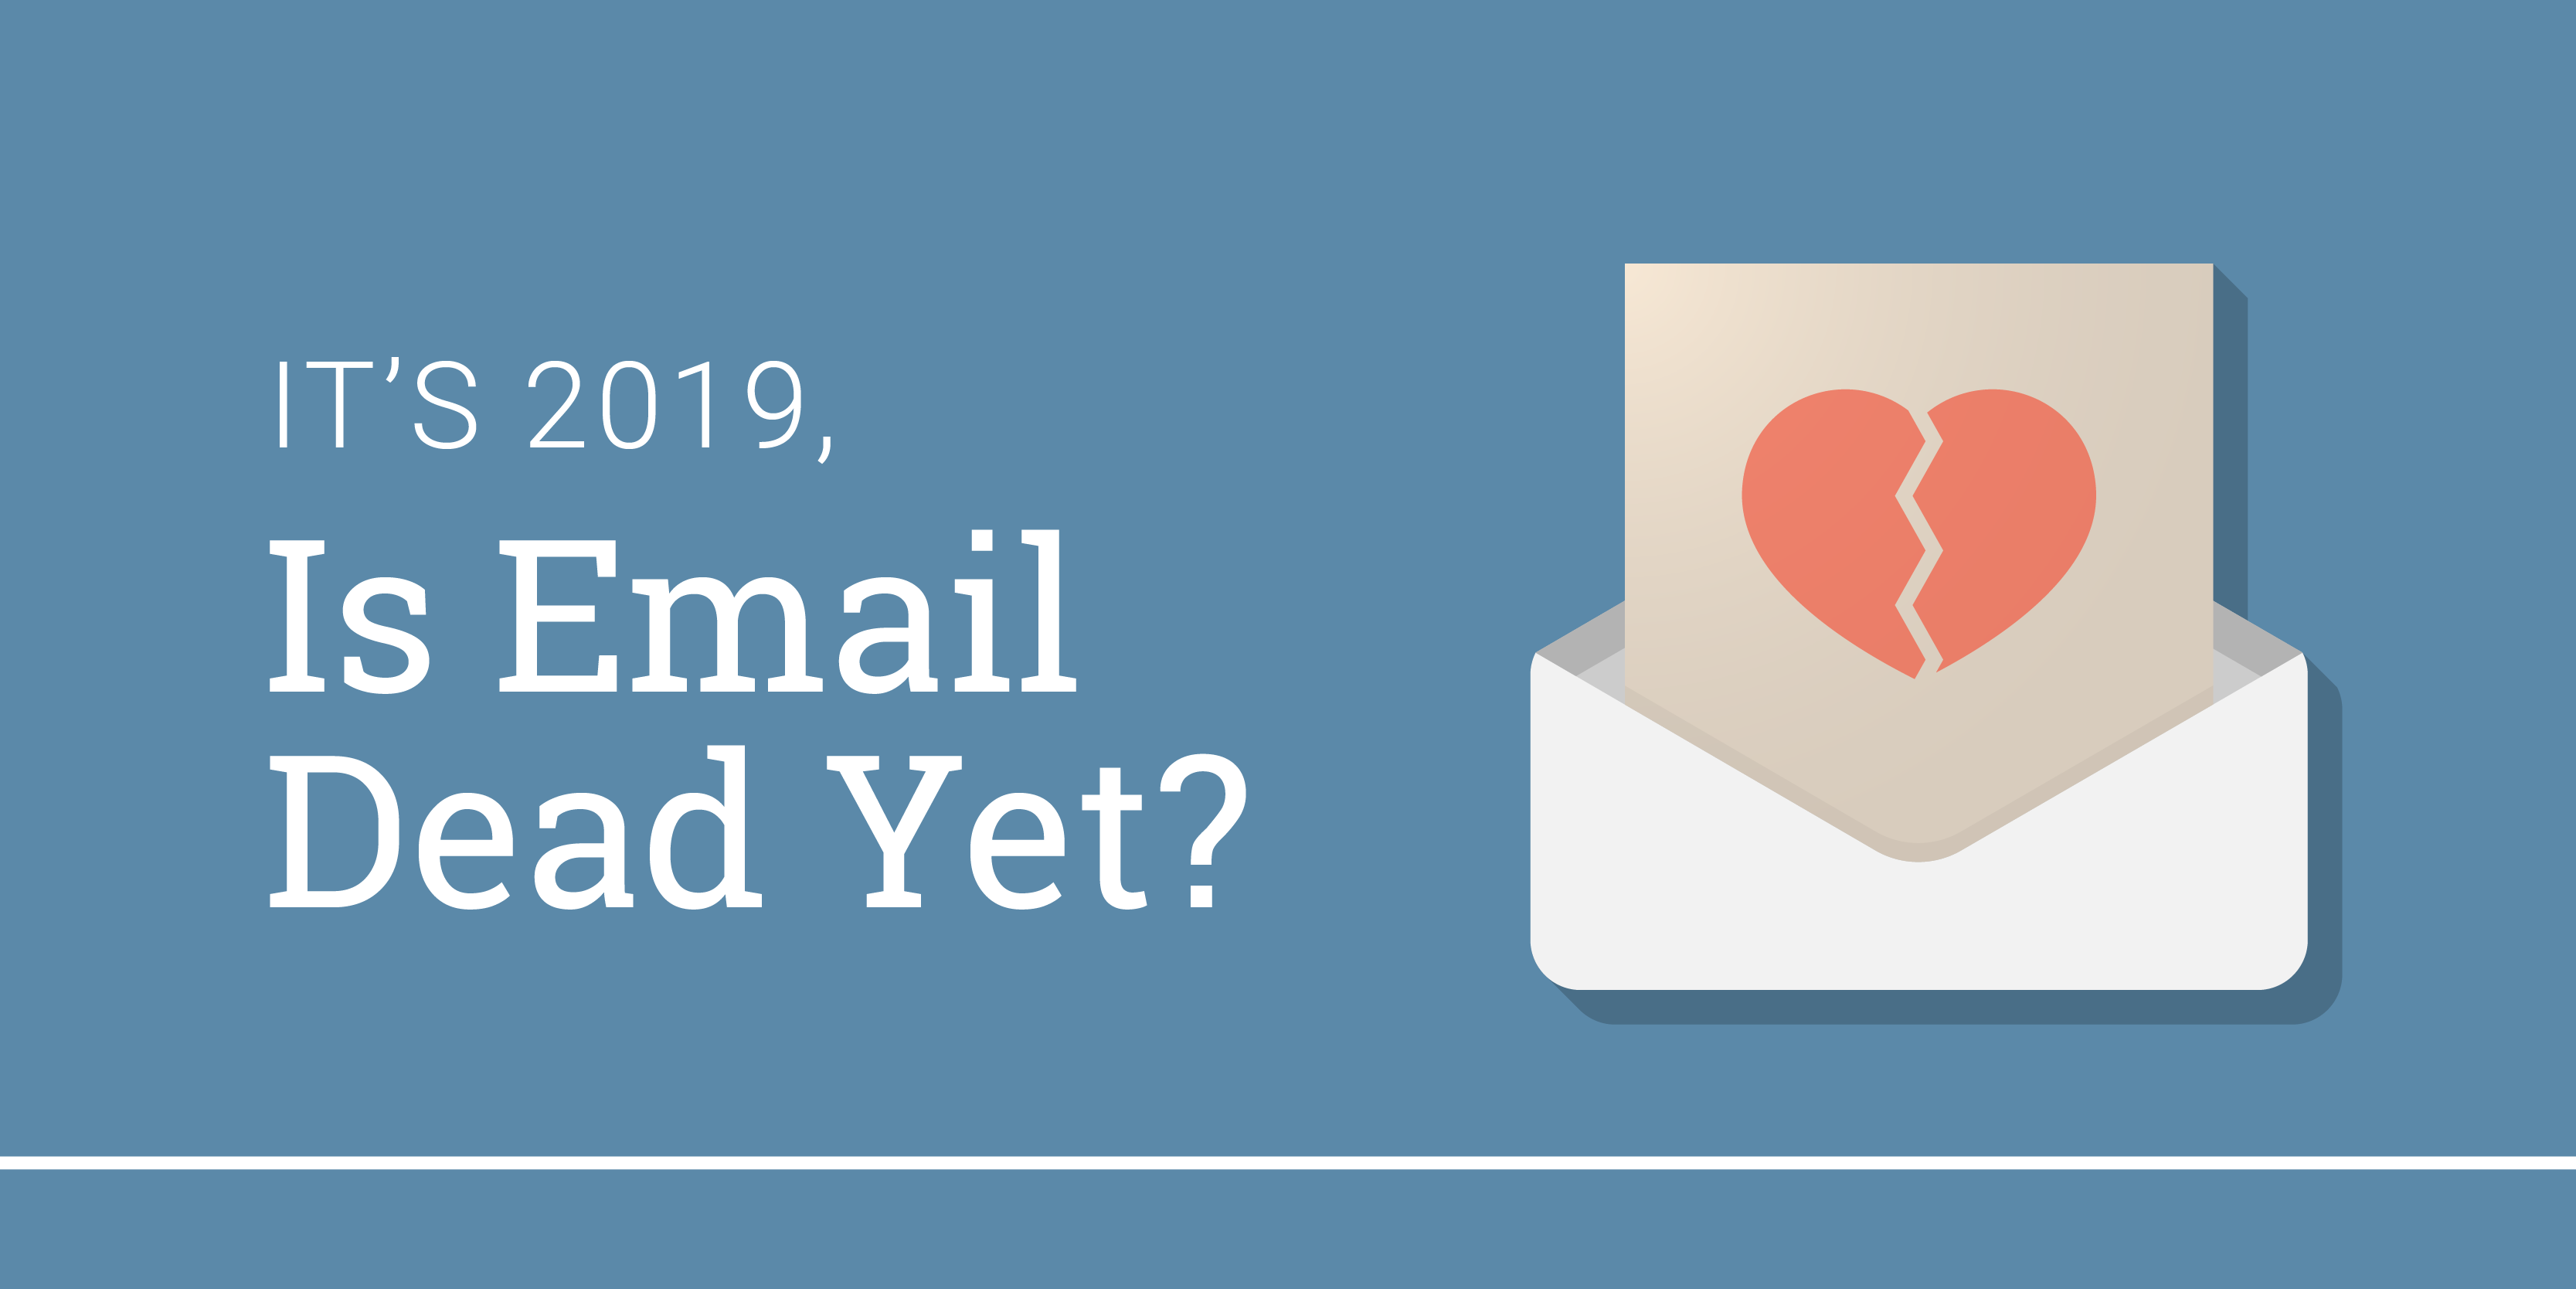 its-2019-is-email-dead-yet?